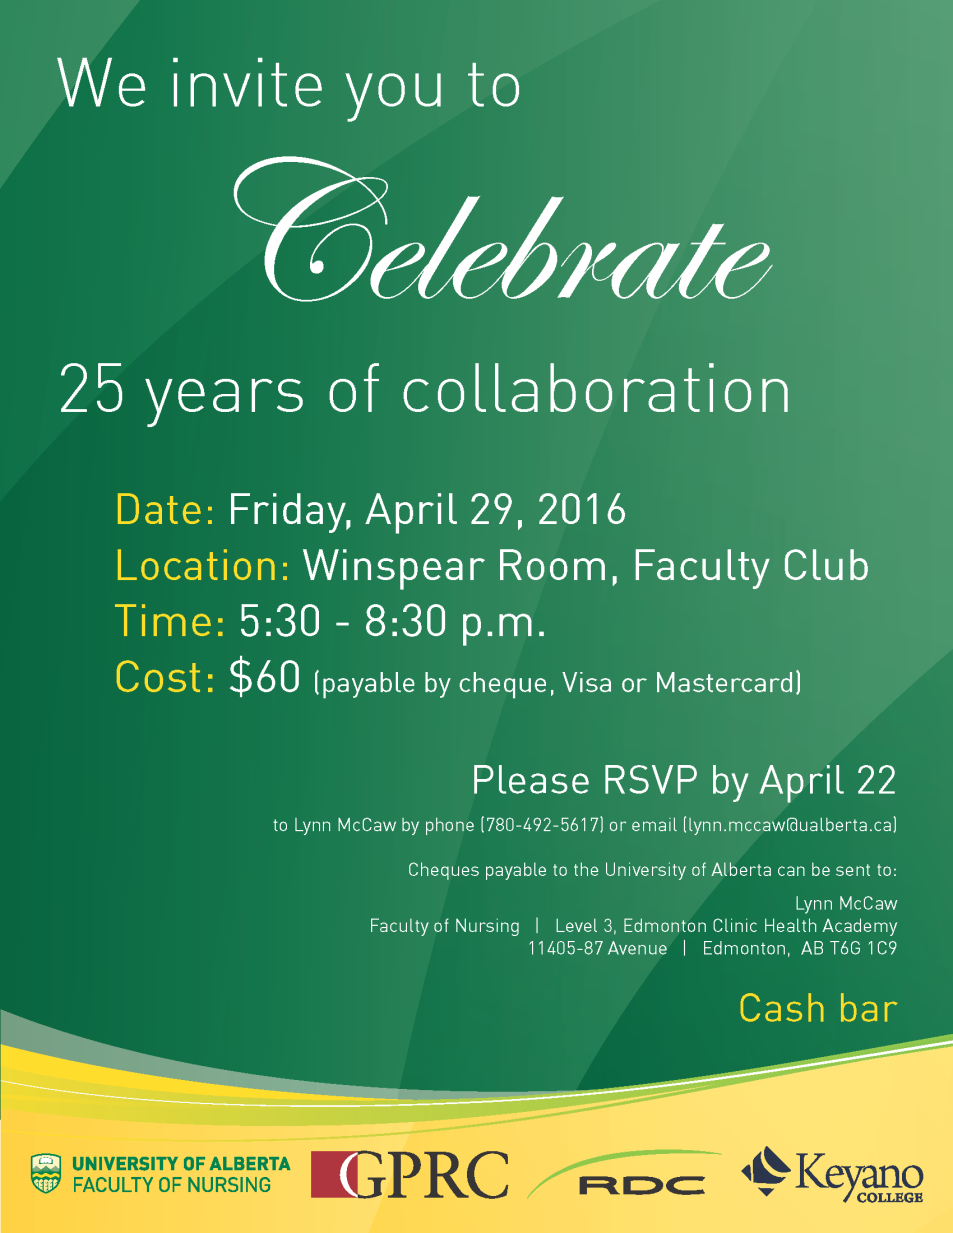 Collab 25th Anniversary Event